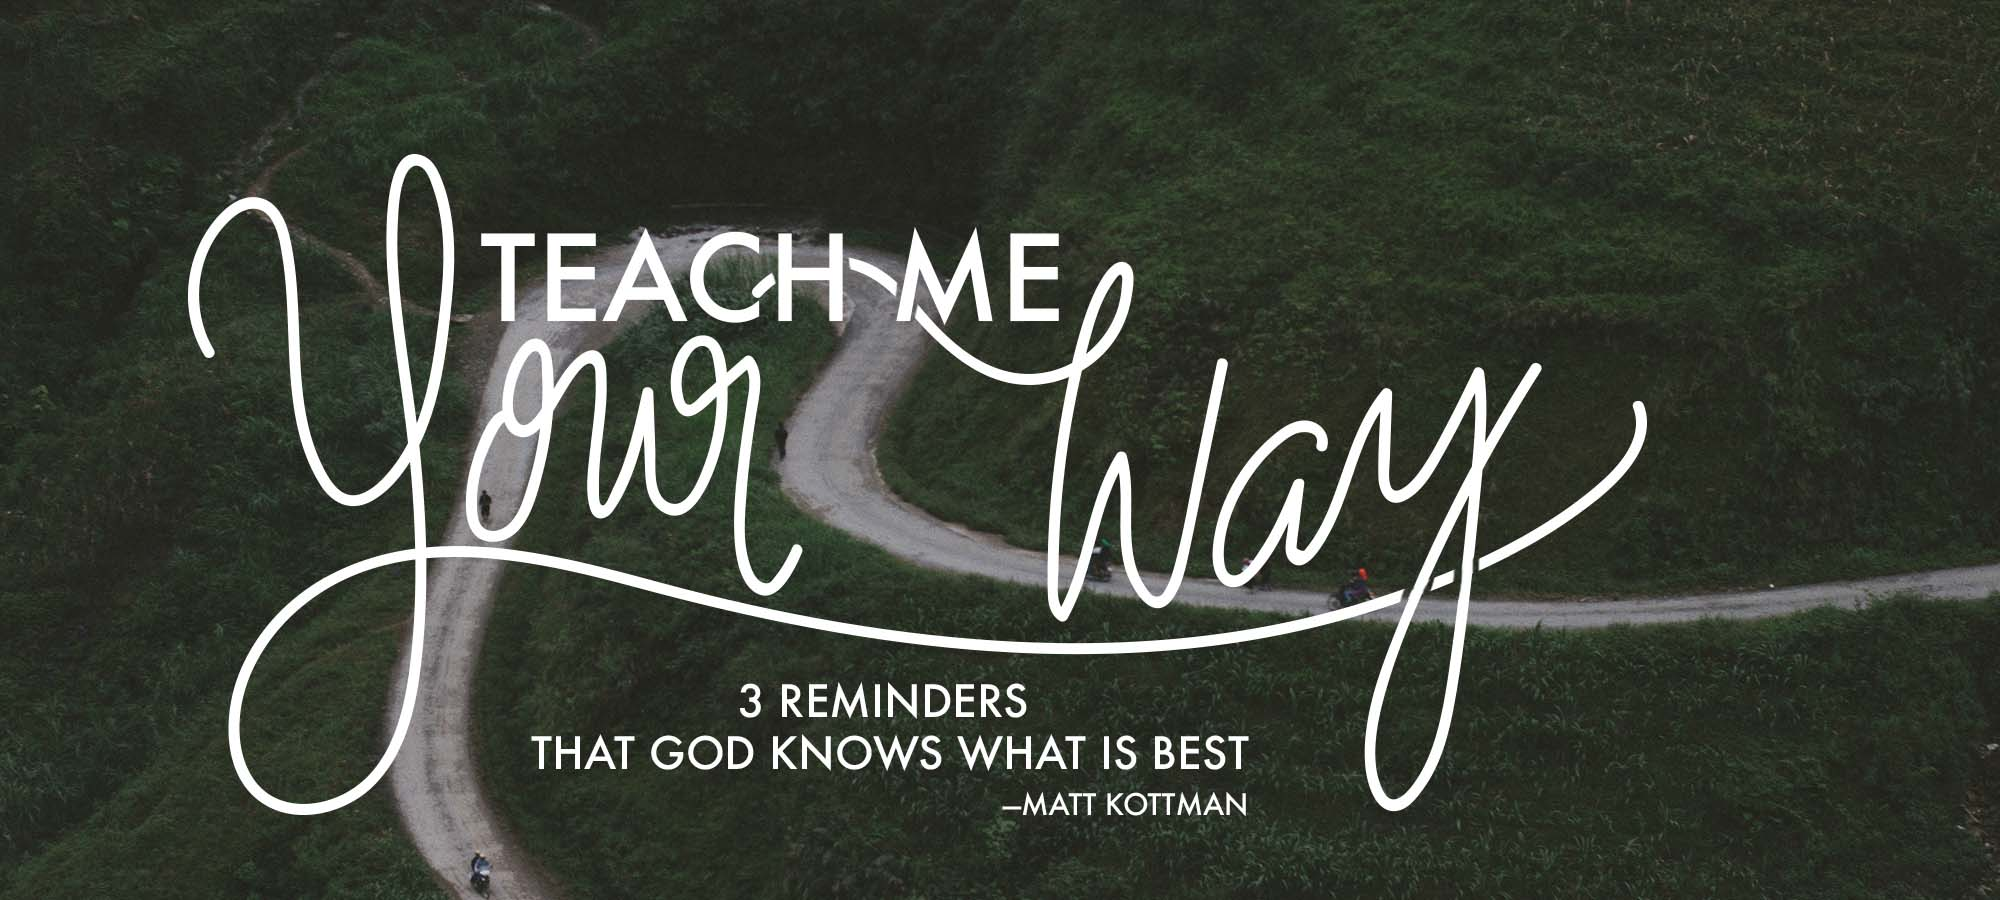 Teach Me Your Way: Three Reminders that God Knows What is Best